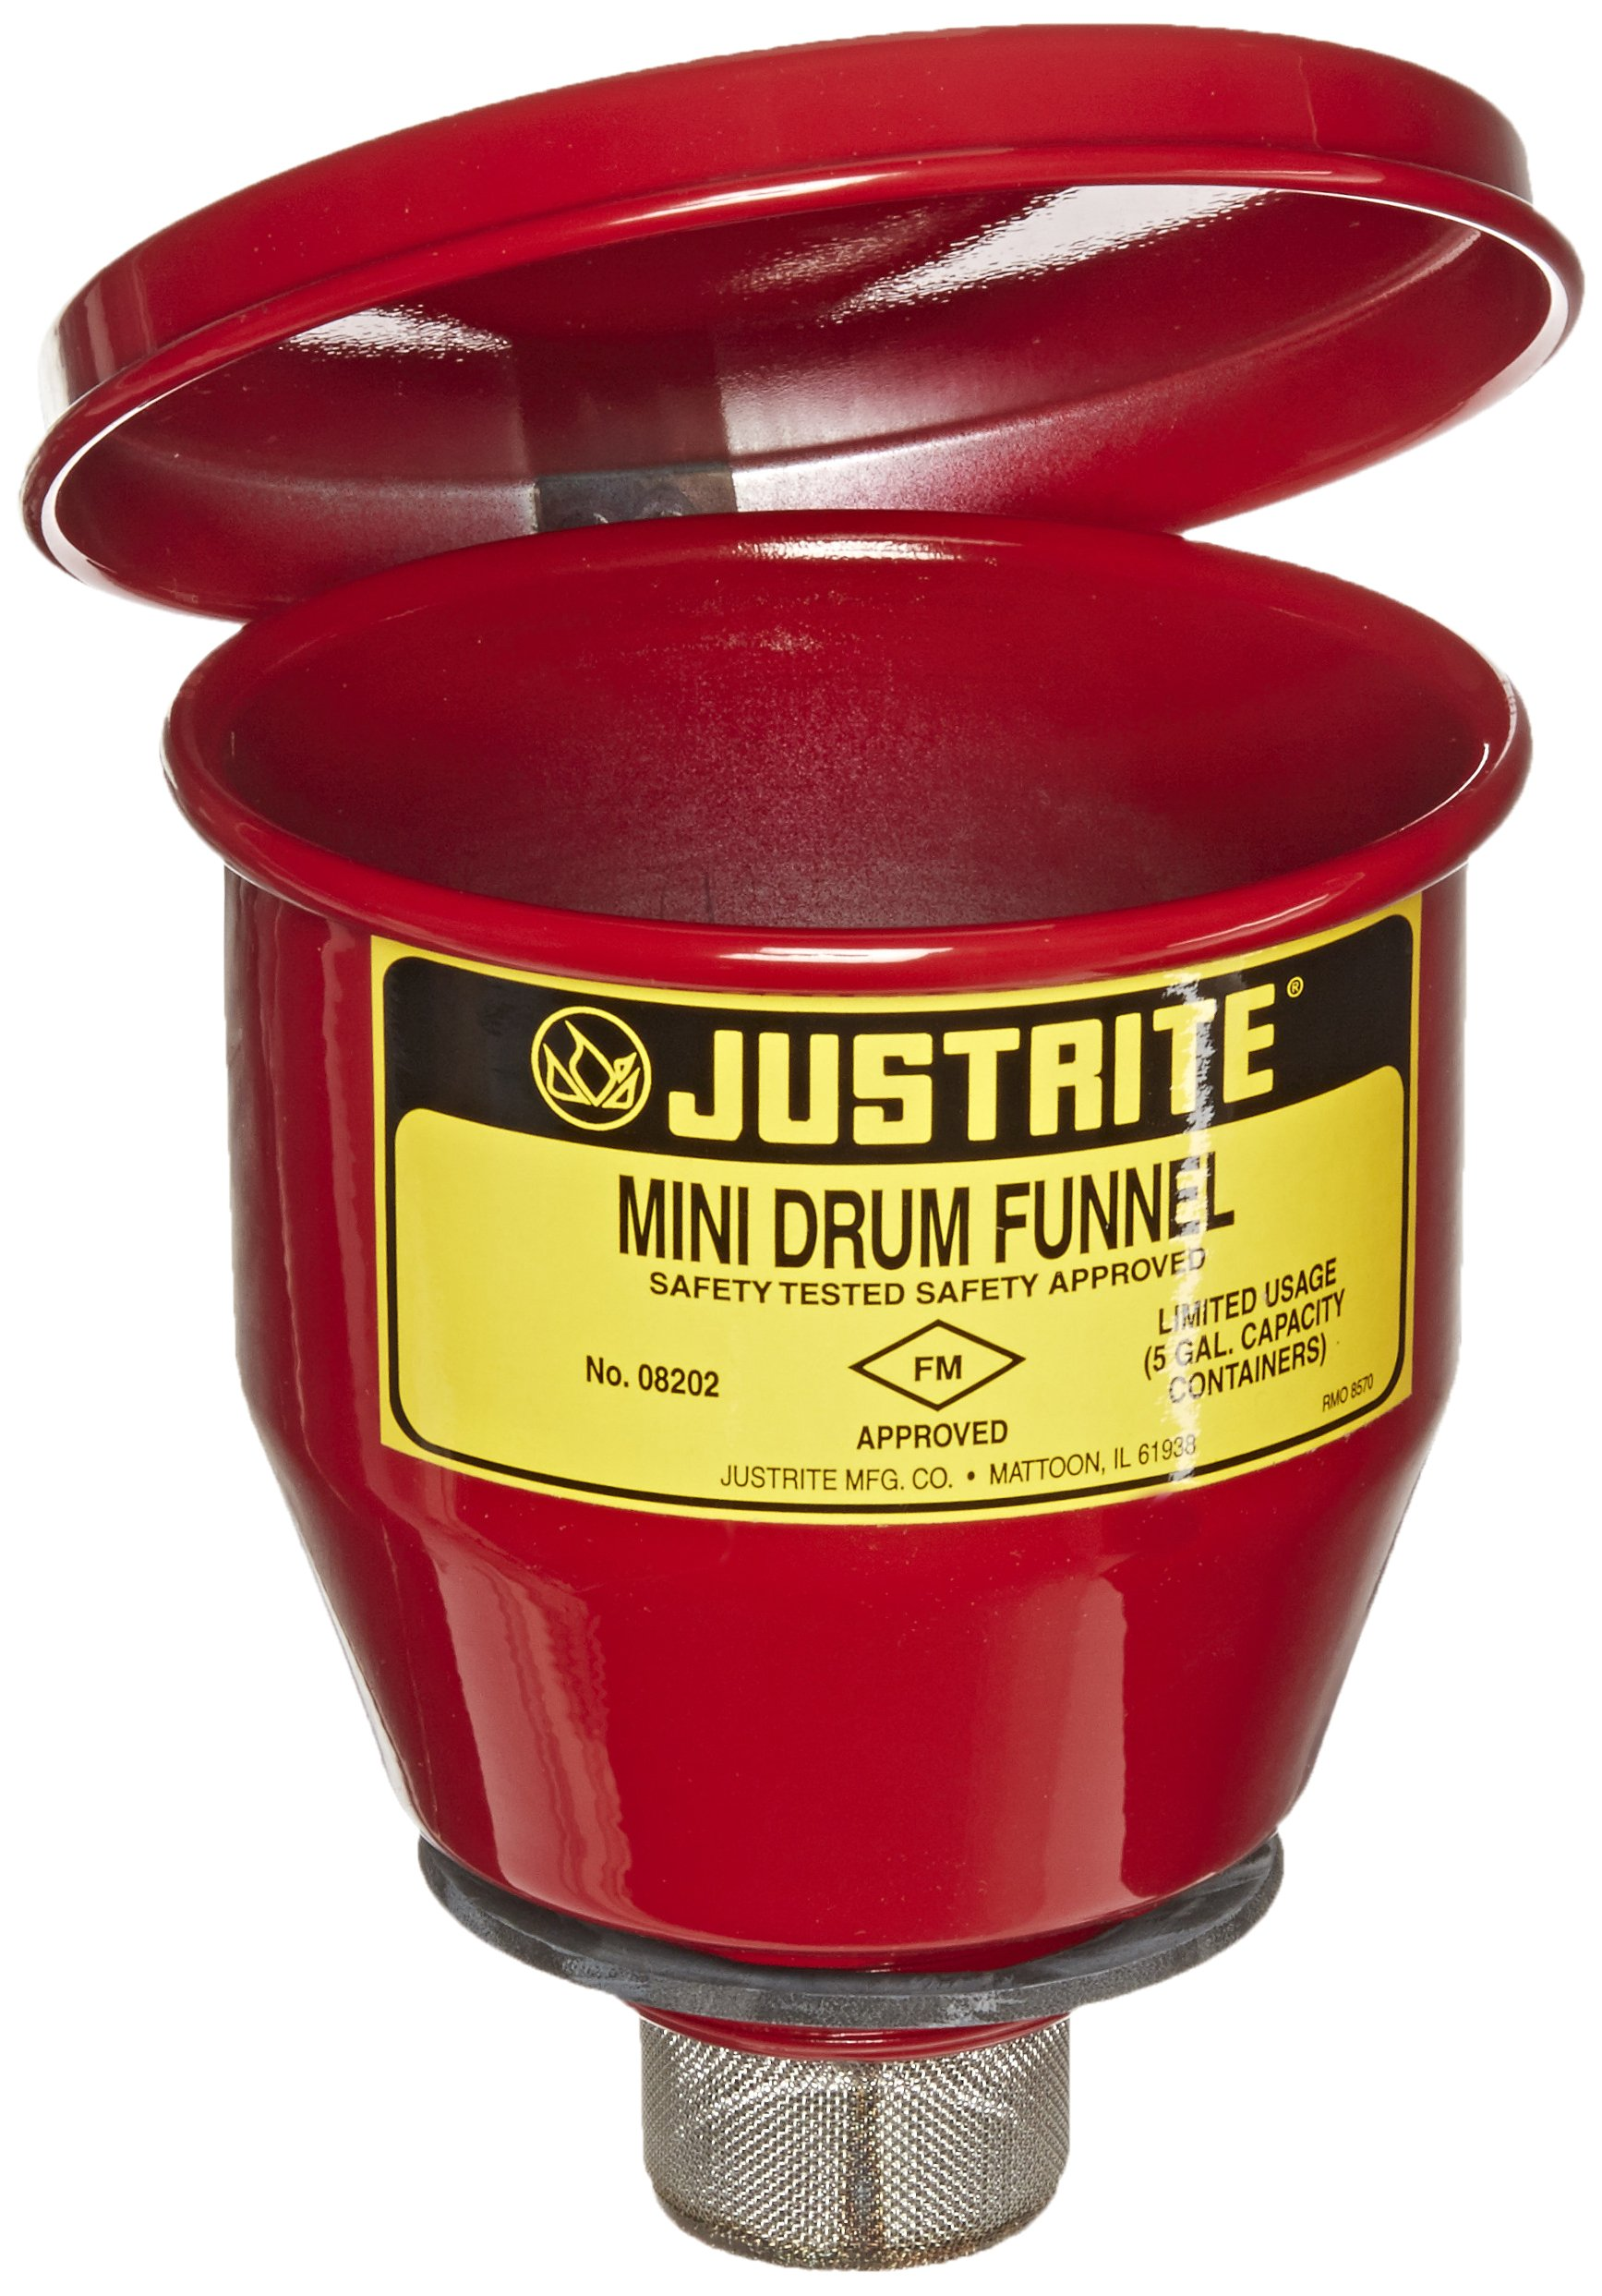 Justrite 08202 Steel Small Safety Drum Funnel with Manual Close Cover, 1 qt Capacity, 4-1/2'' Diameter x 4-1/2'' Height, for 5 Gallon Steel Pails with 2'' NPT by Justrite (Image #1)